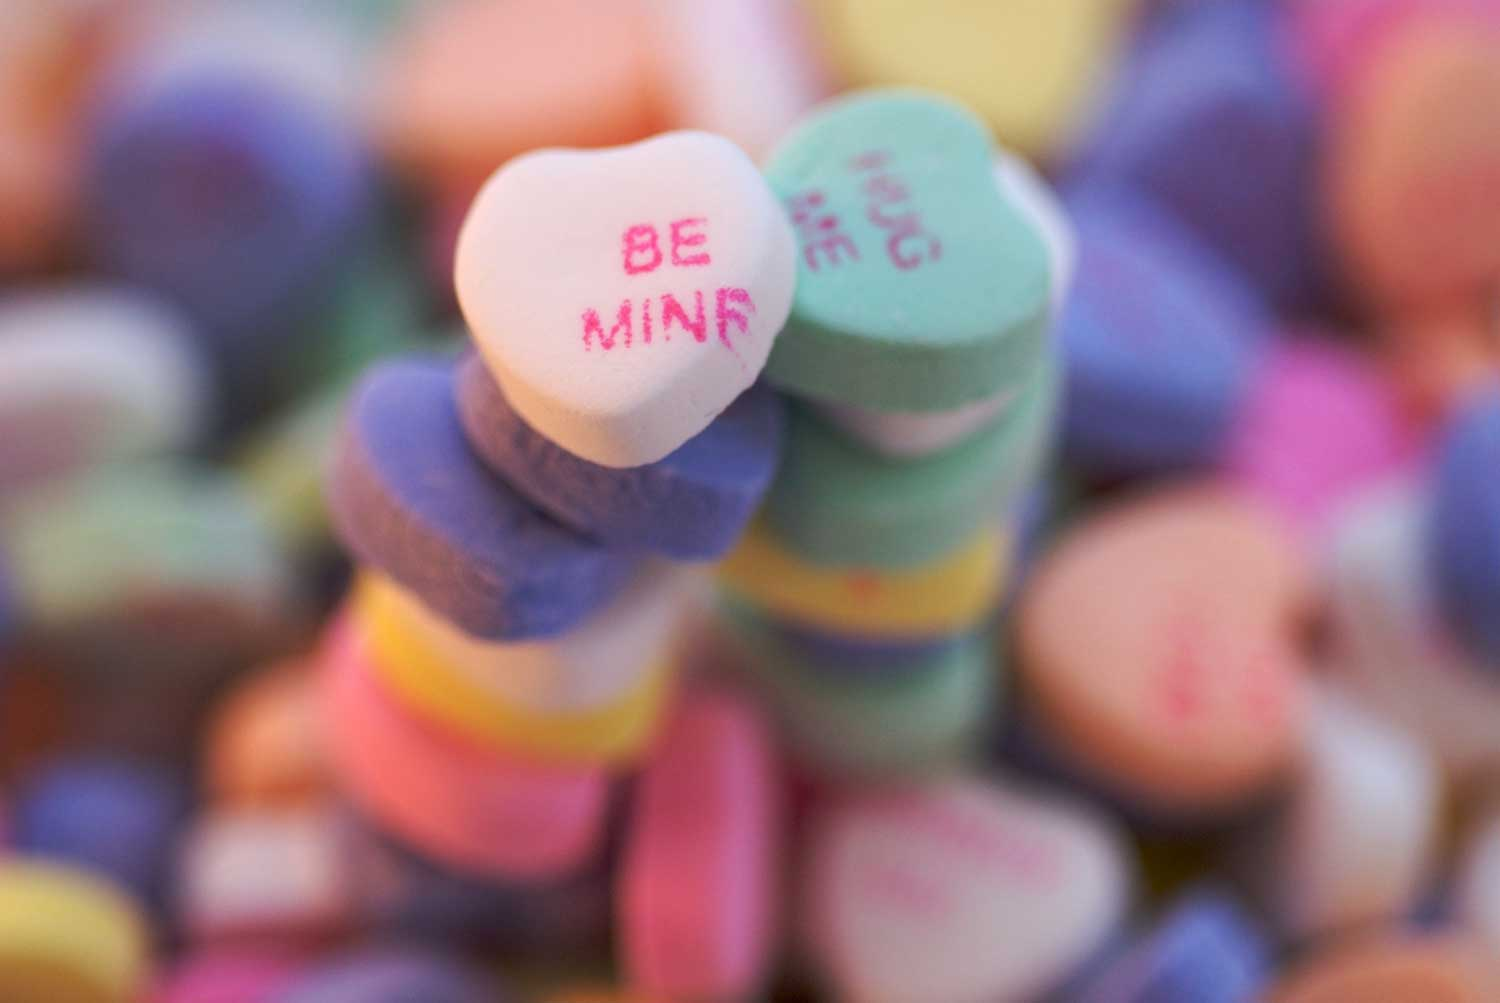 Be Mine: Client Feedback, The Secret to Successfully Closing a Sale